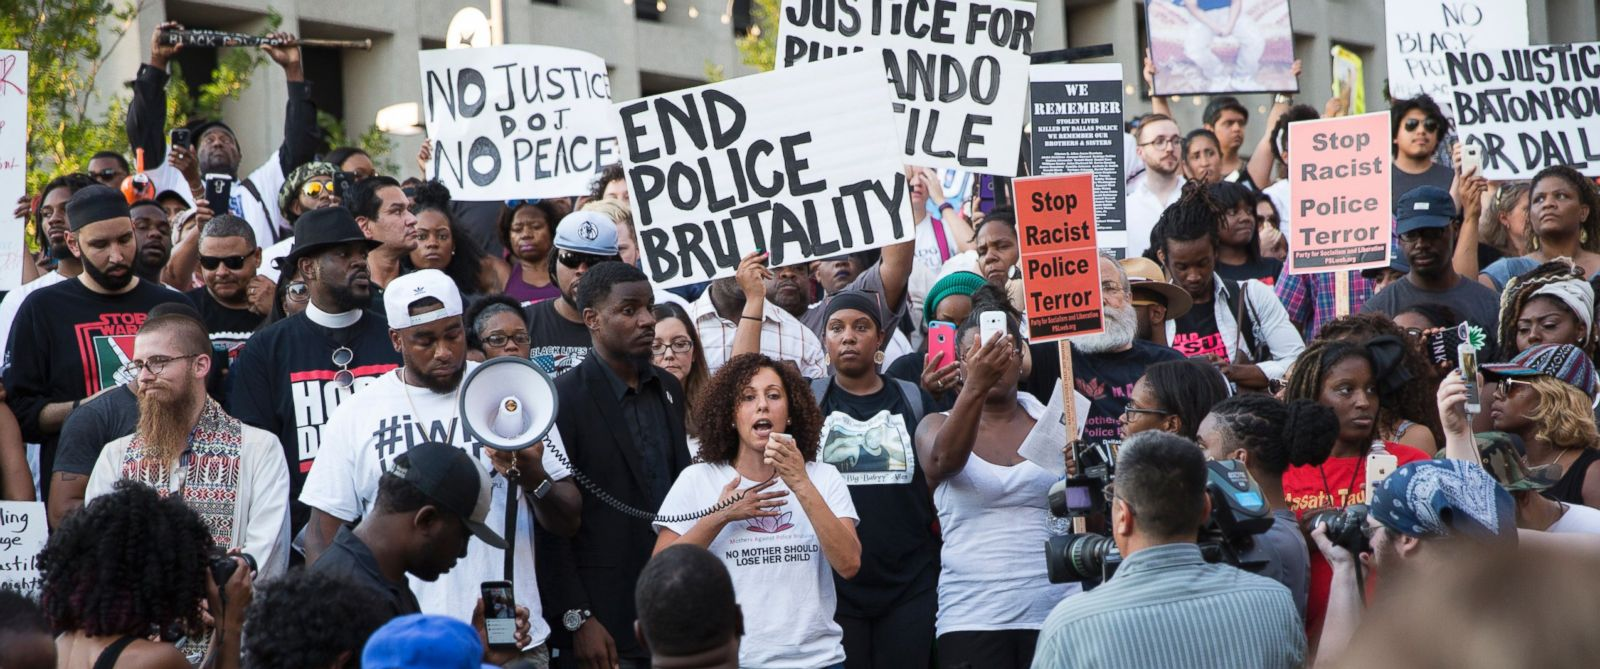 PHOTO: People rally in Dallas, July 7, 2016 to protest the deaths of Alton Sterling and Philando Castile.